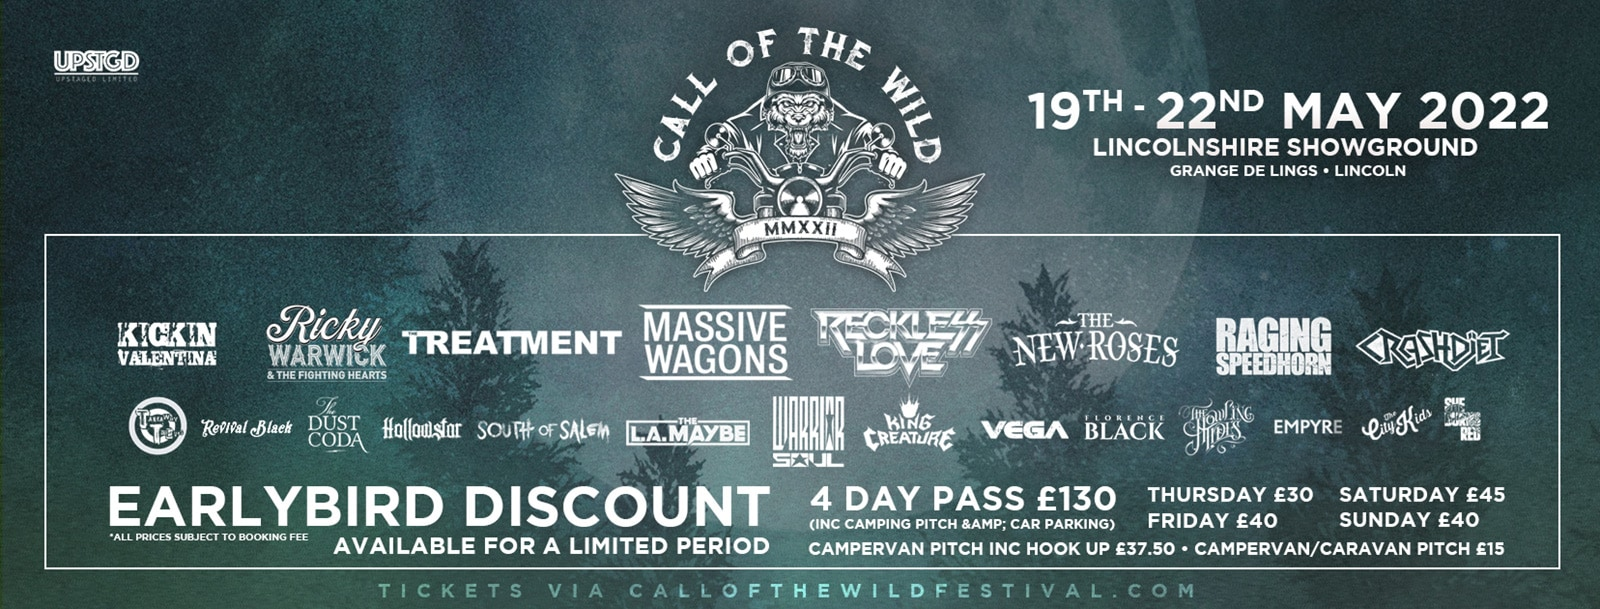 Call Of The Wild Festival 2022